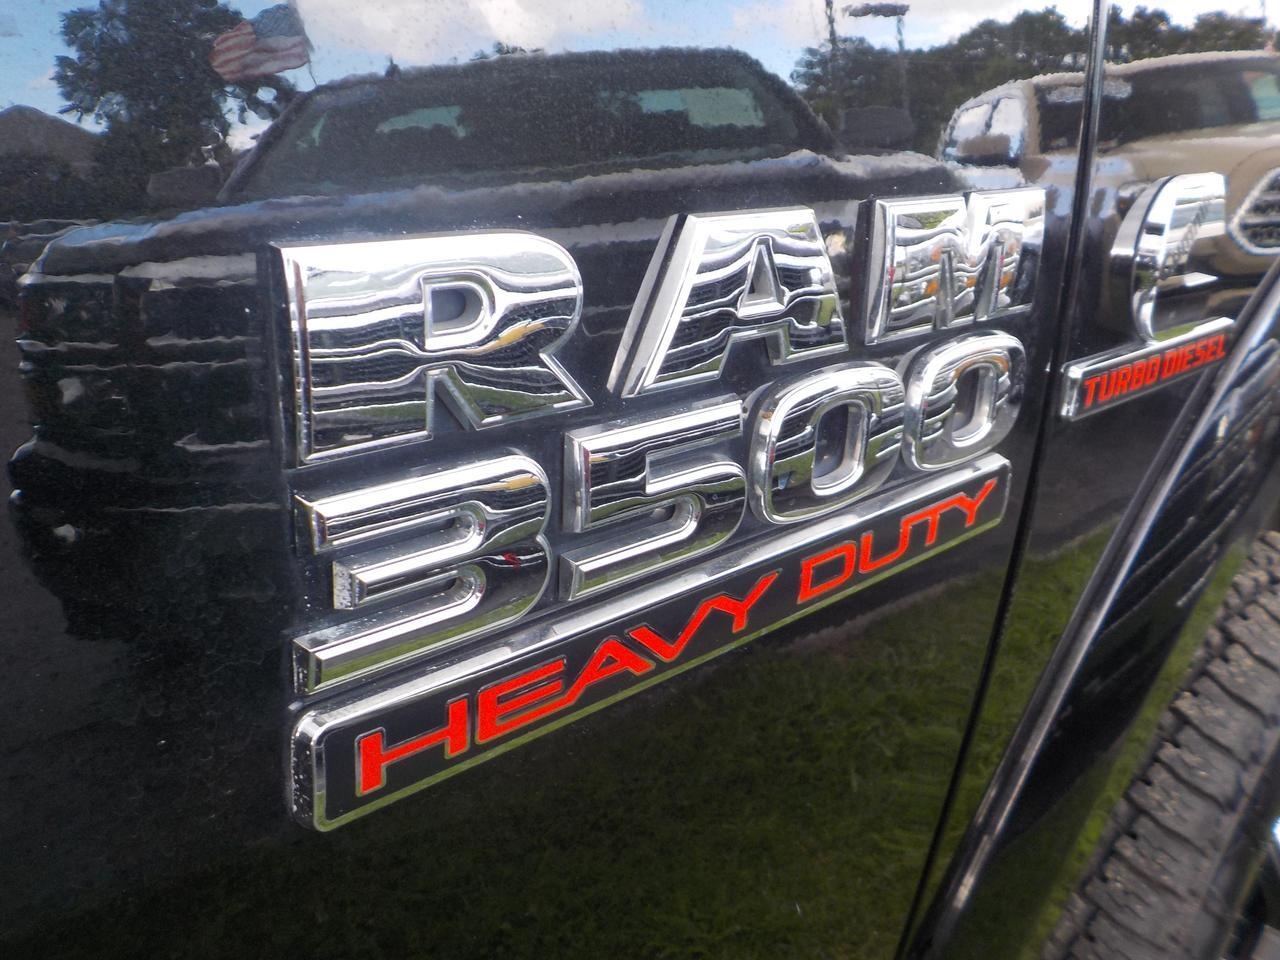 2017 RAM 3500 LARAMIE, CUSTOM RIMS, BACKUP CAMERA, LONG BED, TOWING HITCH, LEATHER INTERIOR!!! Virginia Beach VA